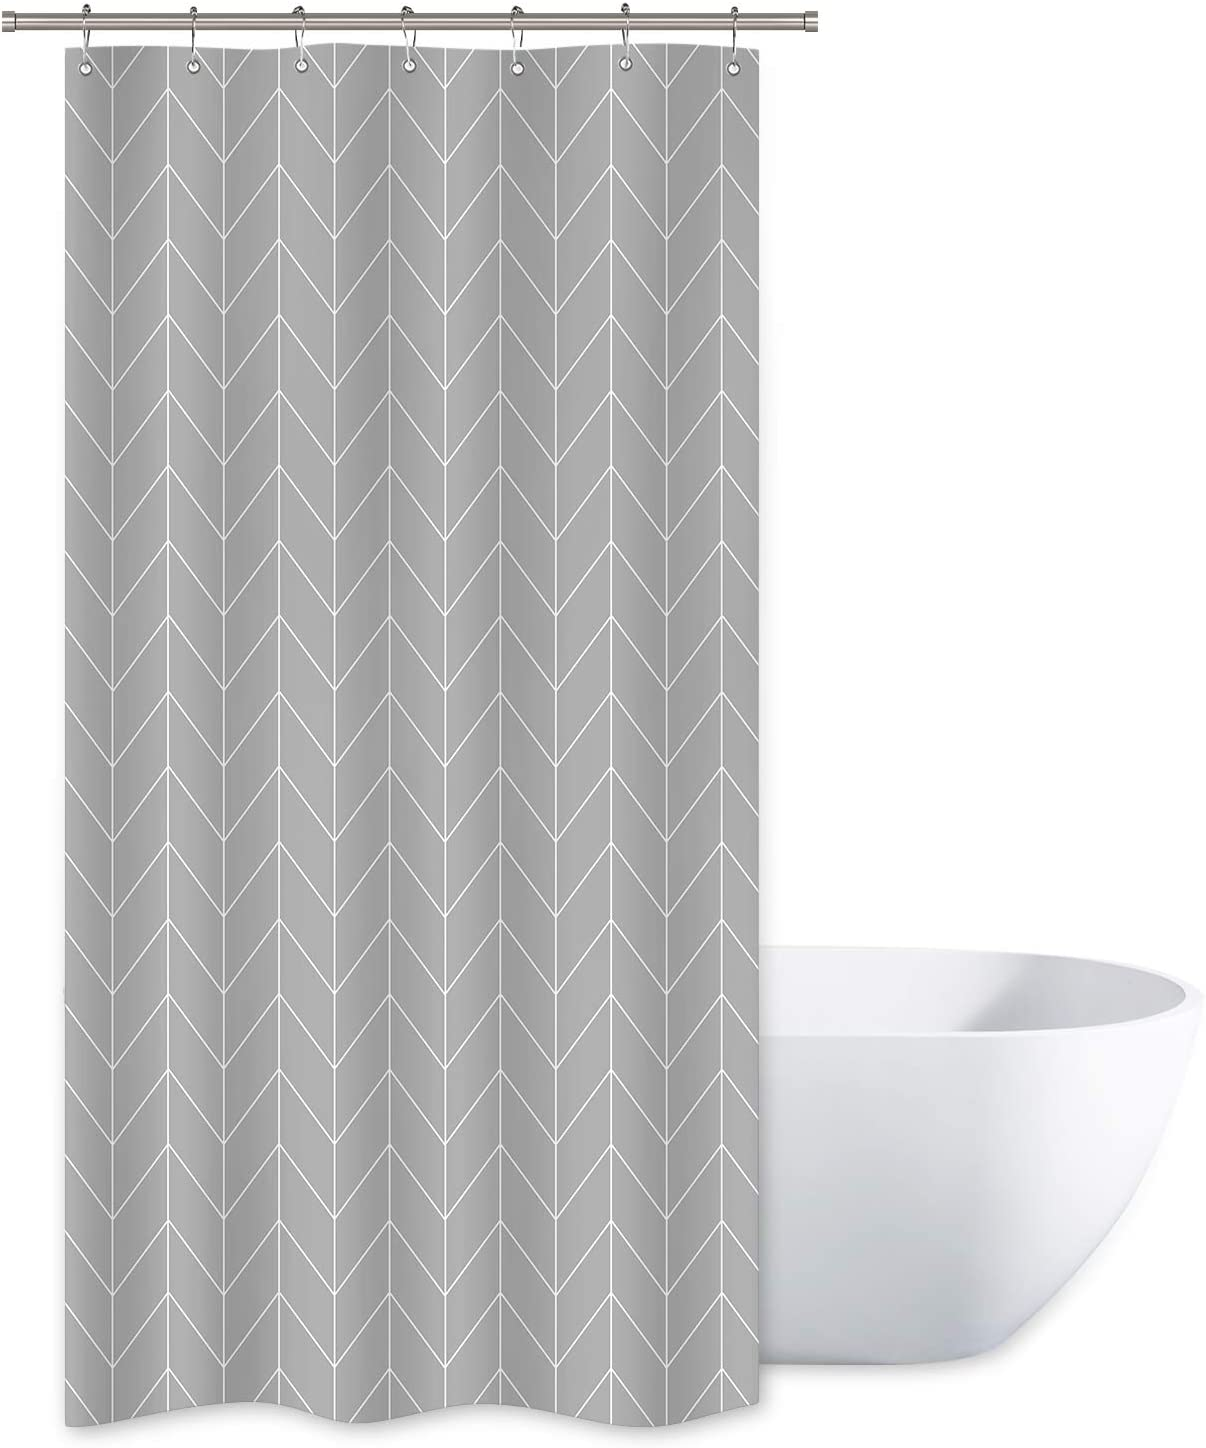 Riyidecor Striped Herringbone Chevron Shower Curtain Panel Grey Geometric Decor Fabric Bathroom Set Polyester Waterproof 36x72 Inch Plastic Hooks 7 Pack